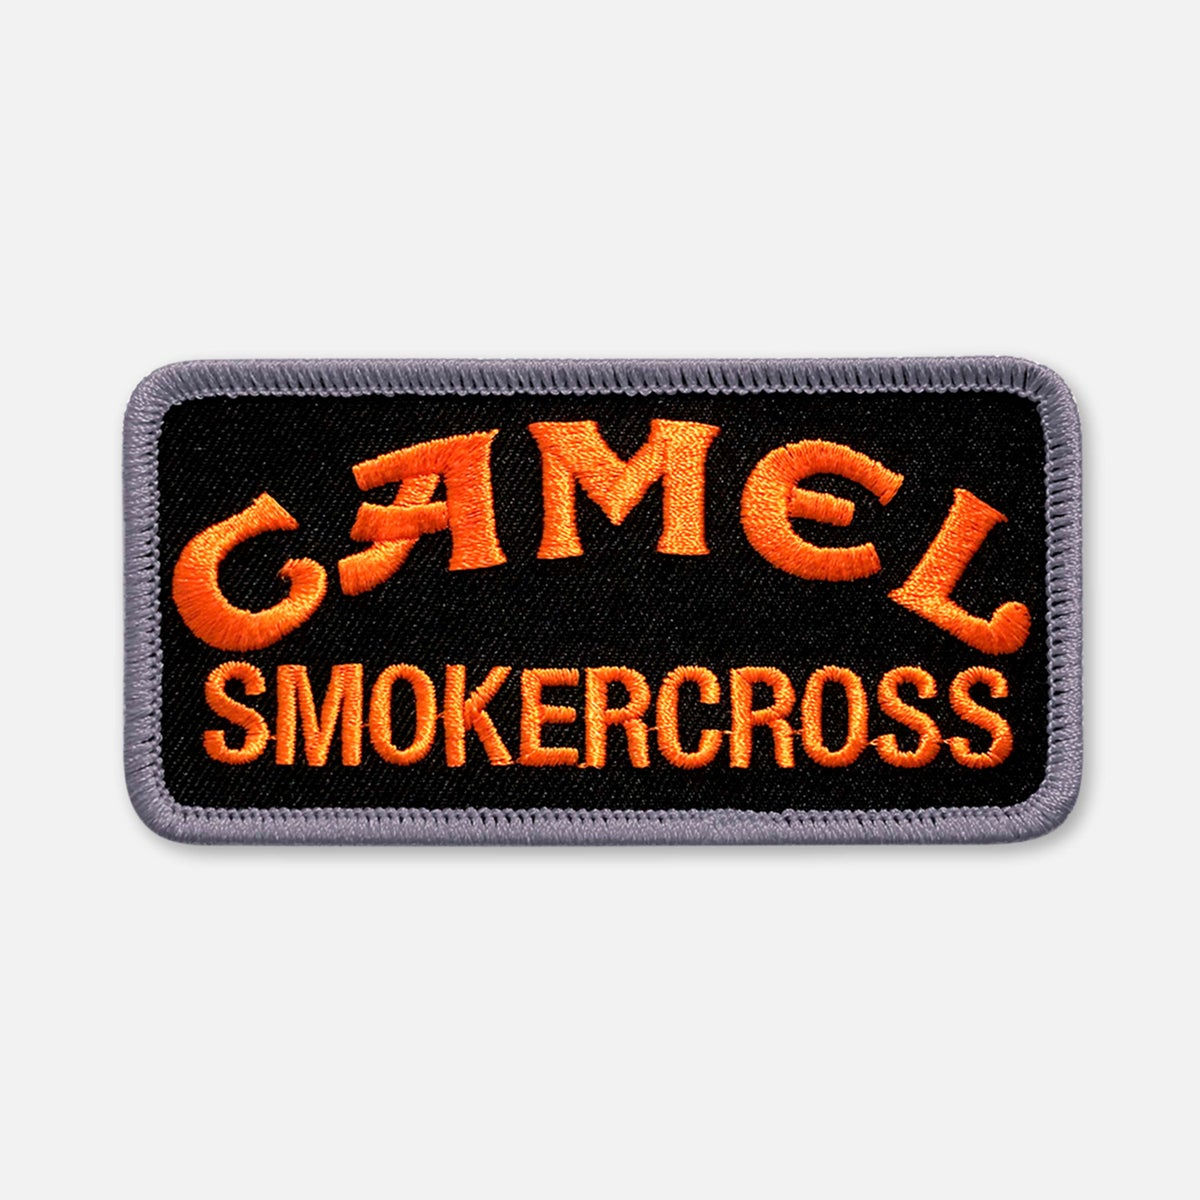 Image of SMALL SIZE CAMEL SMOKERCROSS PATCH